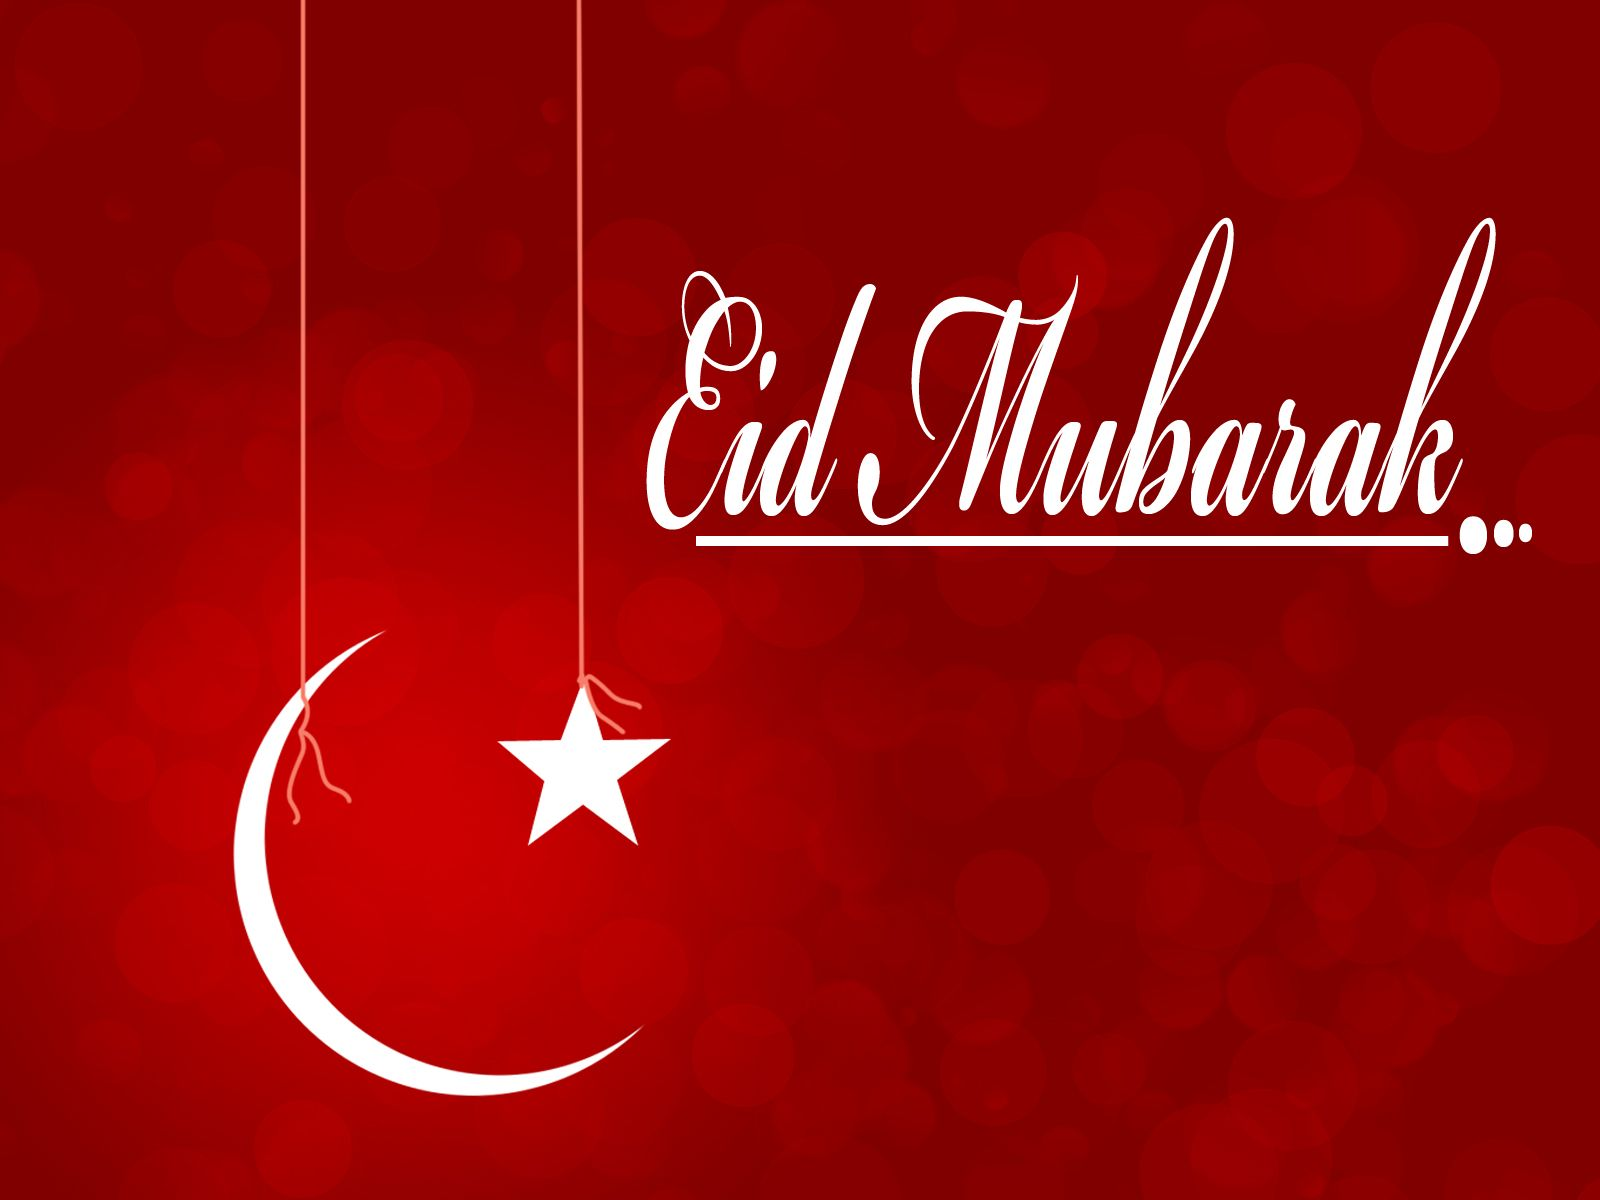 Abooddeals wish you a very happy and peaceful eid ul fitr events eid al fitr eid mubarak 2015 greetings wishes quotes messages cards sms wallpaper kristyandbryce Image collections